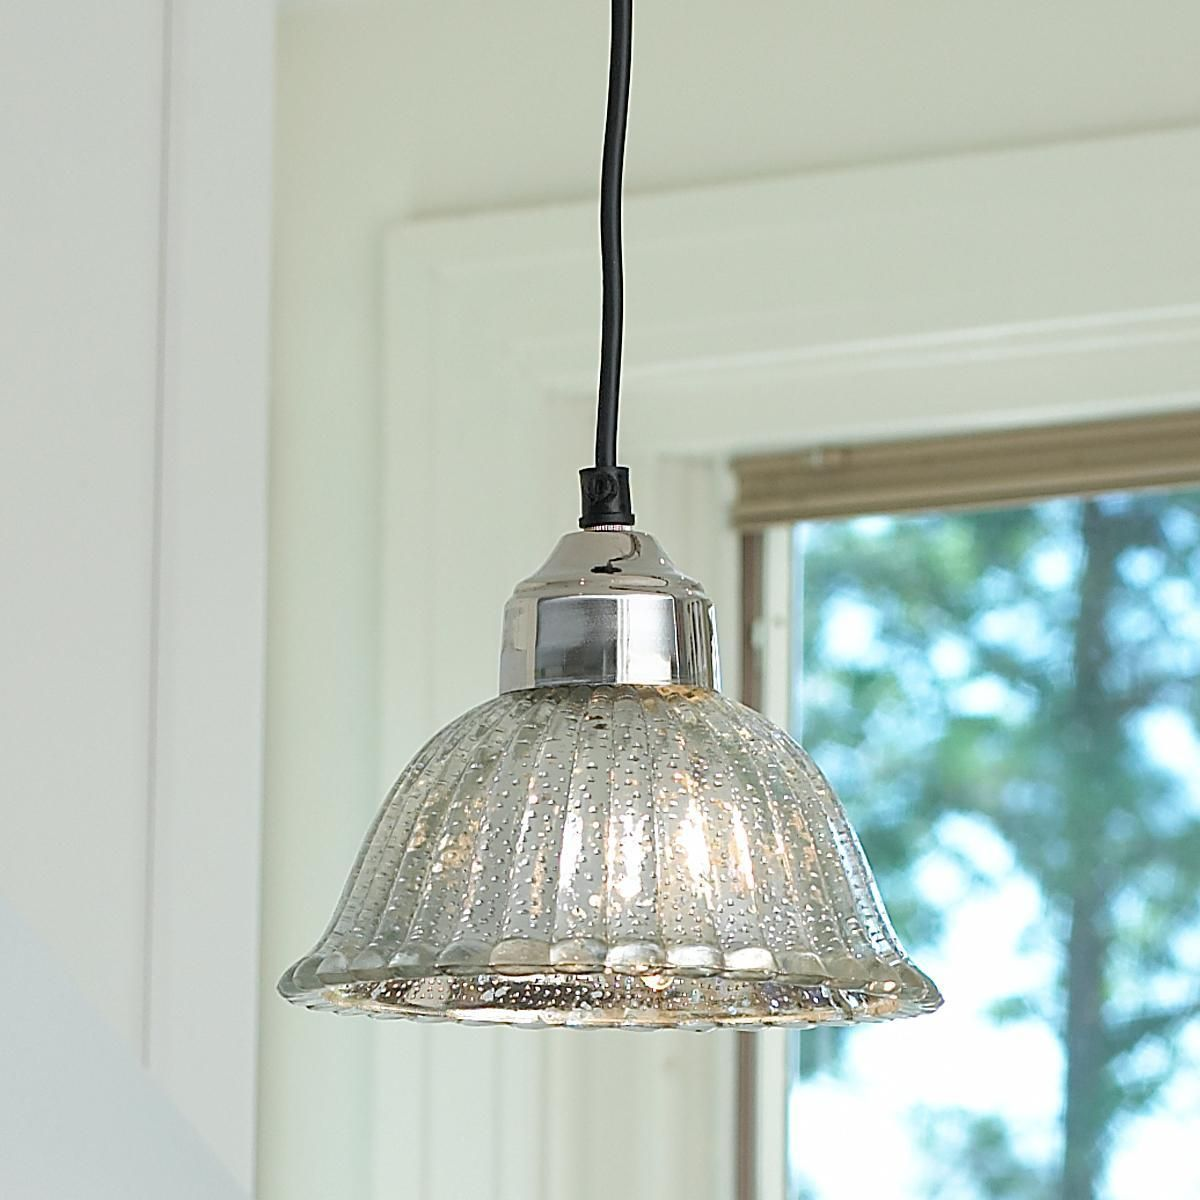 Mercury Glass Pendant Light Fixture Custom Ribbed Dome Mercury Glass Shade Pendant Light  Pinterest  Mercury Review